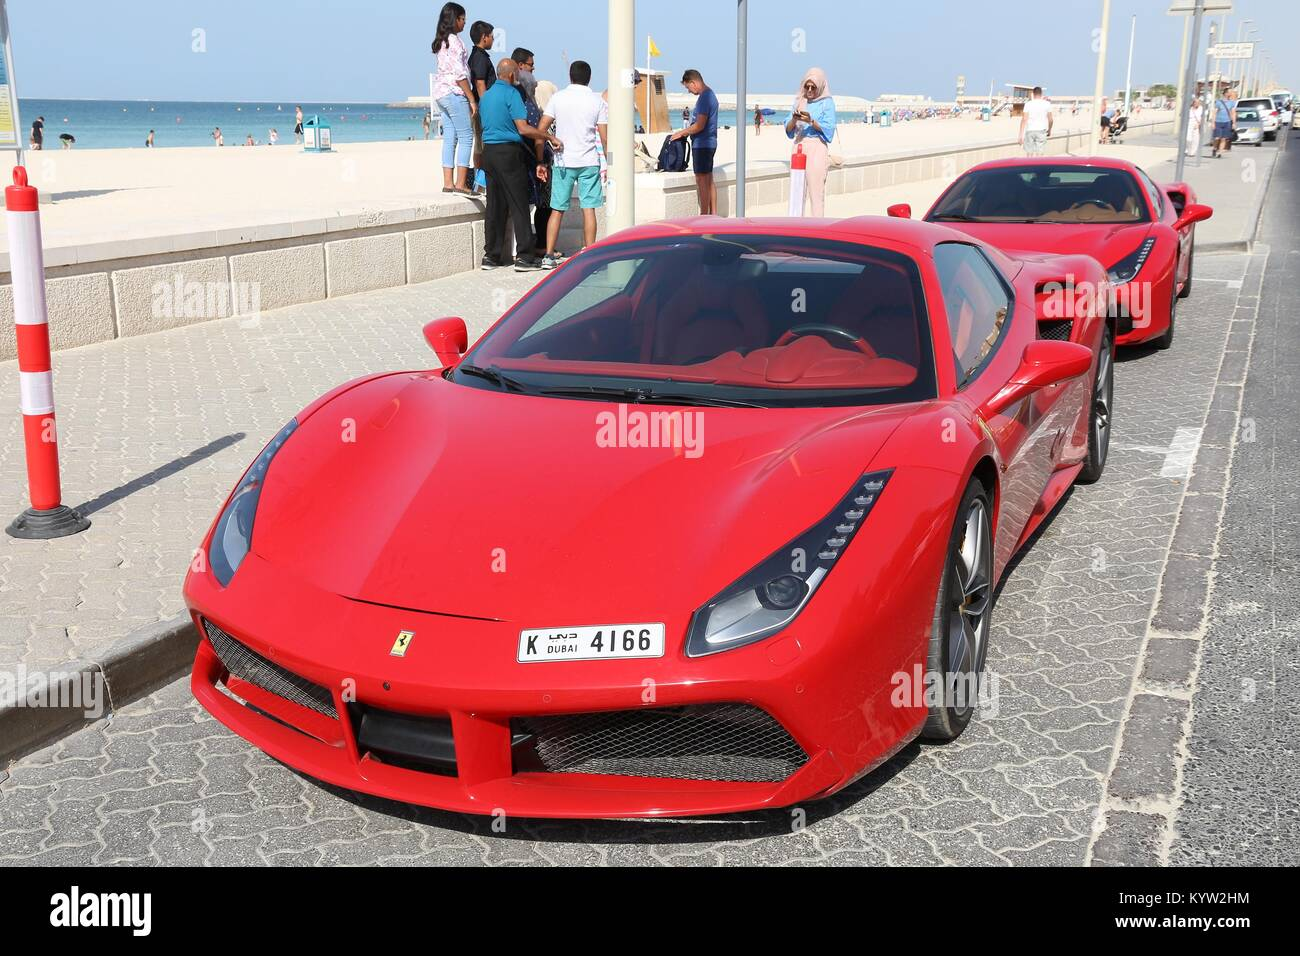 DUBAI, UAE   NOVEMBER 23, 2017: People Walk By Ferrari 488 GTB In Dubai, United  Arab Emirates. Dubai City Has A Car Ownership Rate Of 541 Cars Per 1,0